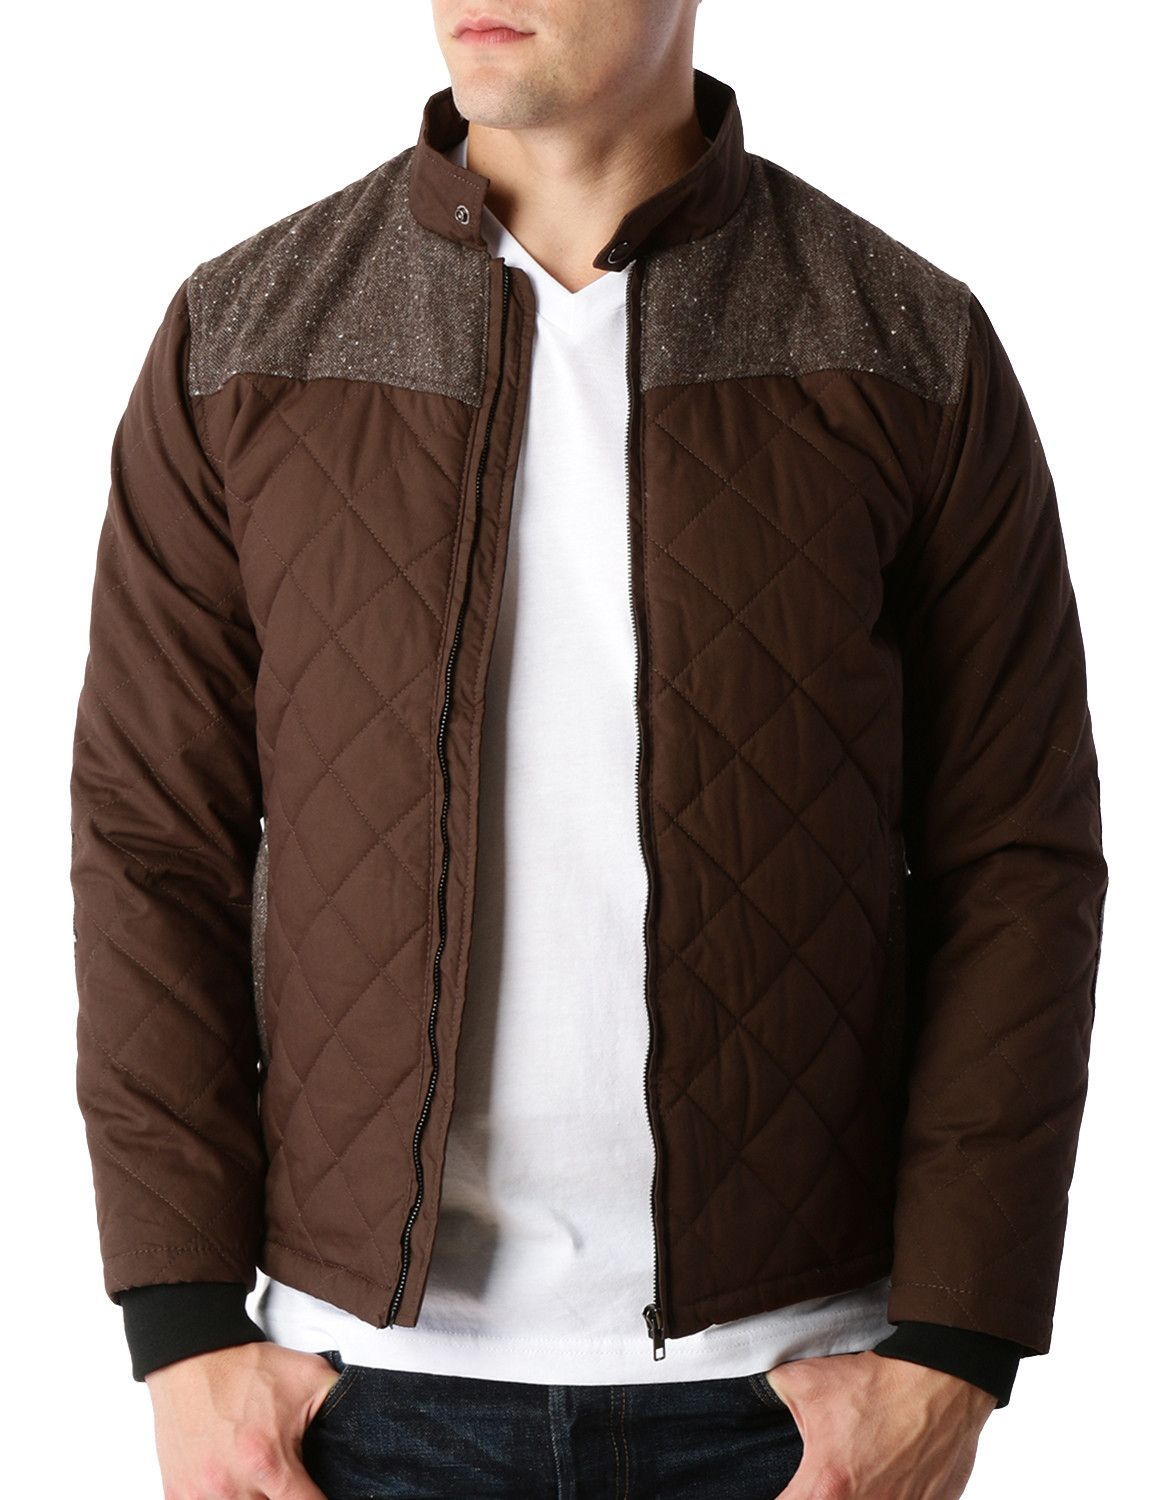 Sizes May Run Small Please Choose A Size Up This Lightweight Quilted Full Zip Up Bomber Jacket With Elbow Patches Is Mens Fashion Edgy Jackets Bomber Jacket [ 1500 x 1150 Pixel ]